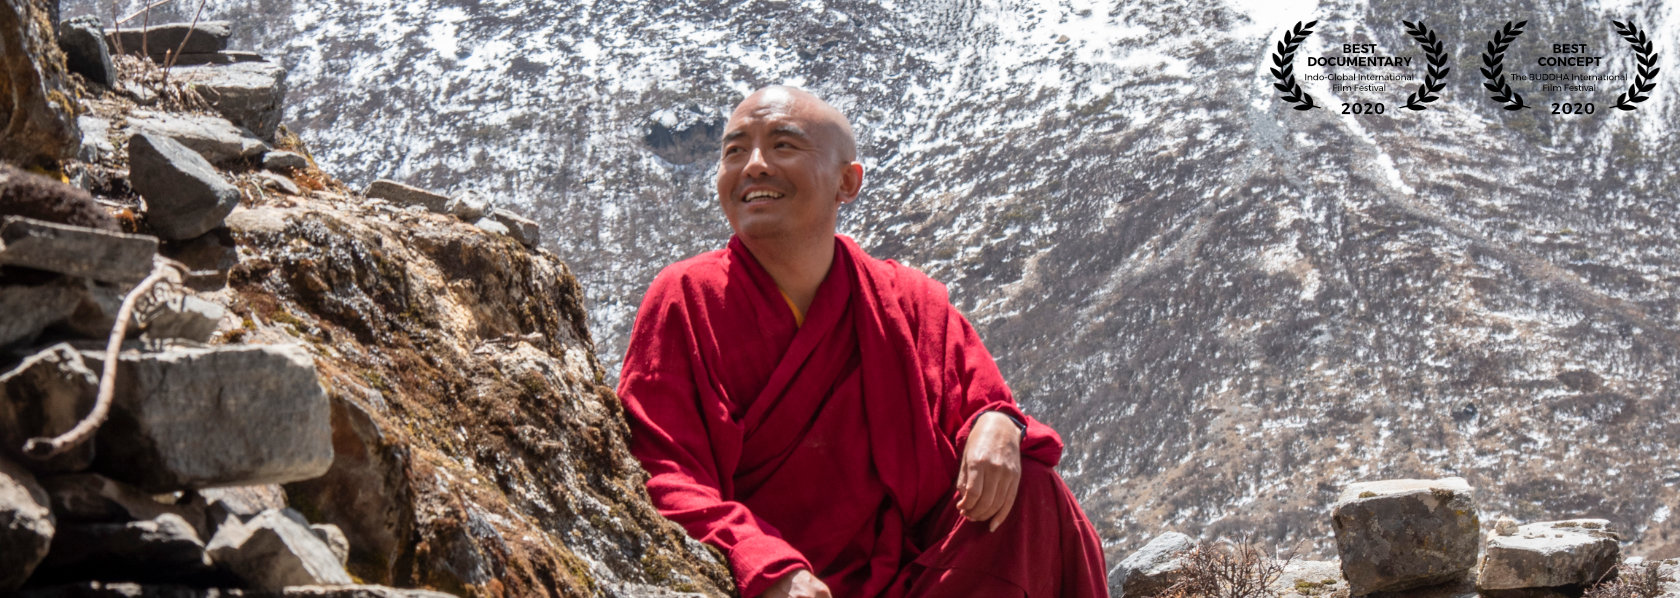 Mingyur Rinpoche smiling looking to his right sitting with one knee up winter mountain background - Wandering But Not Lost - THIS Buddhist Film Festival